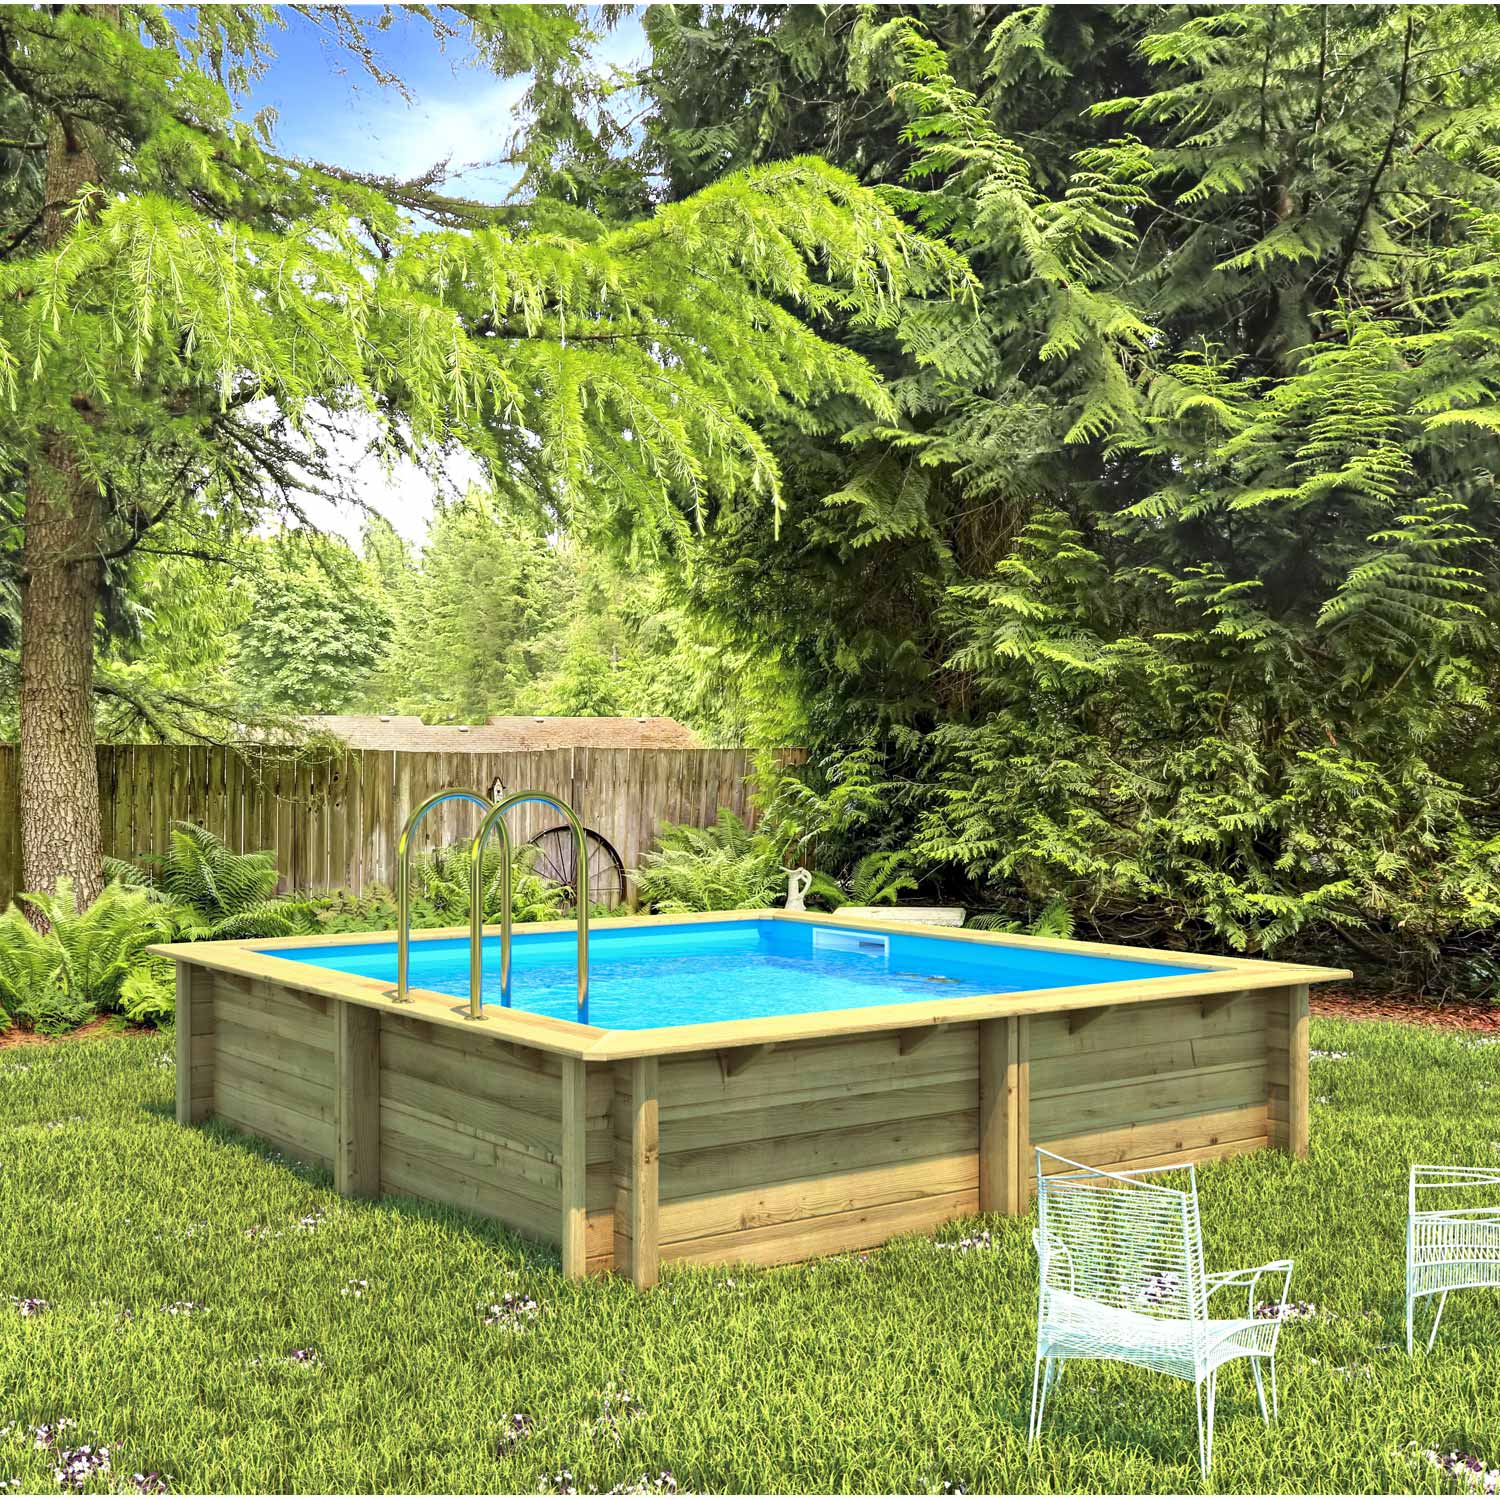 Teppich 3 X 2 Meter Piscine Hors Sol Bois Weva Proswell By Procopi L 3 5 X L